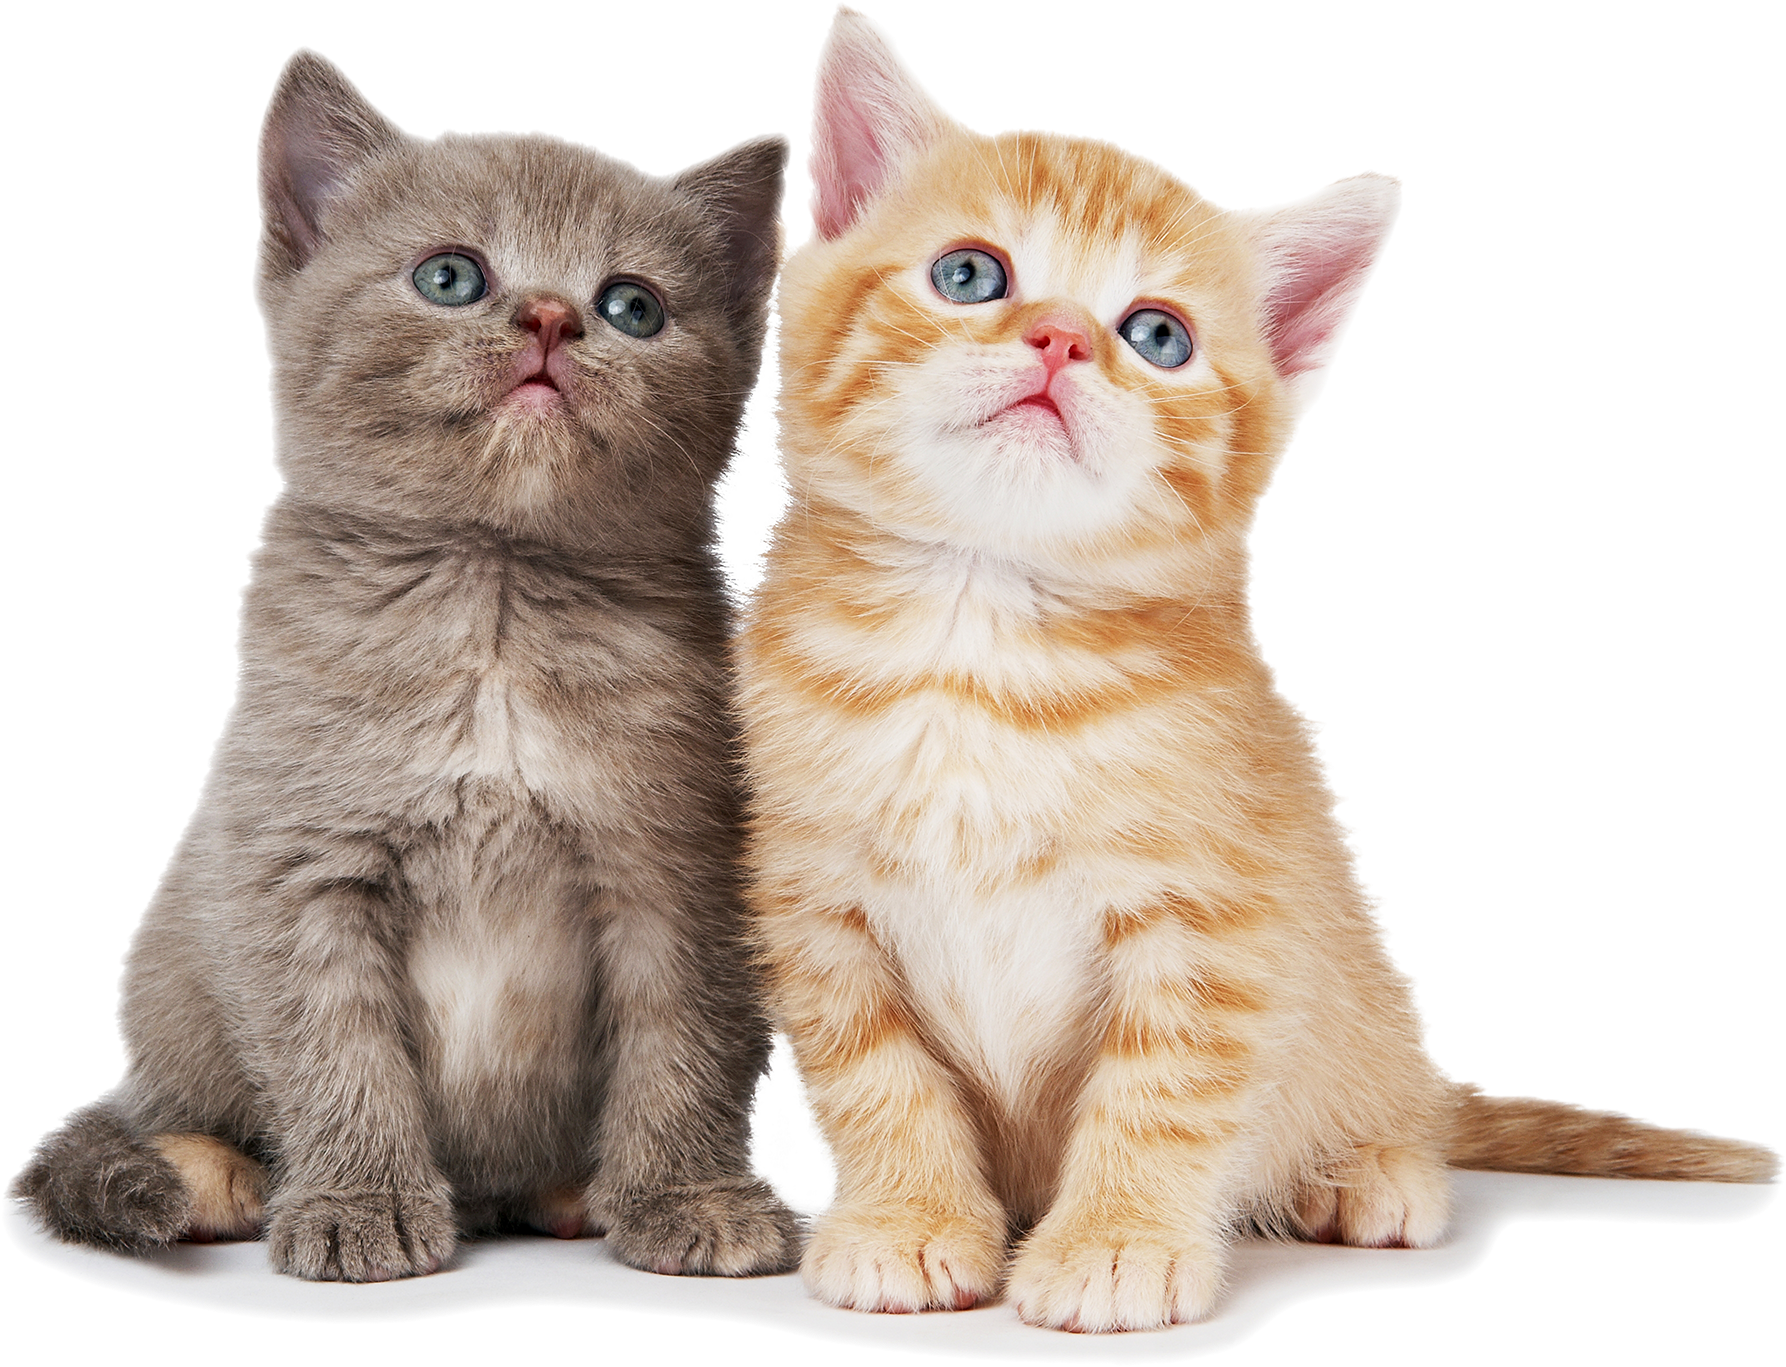 Download Hd Cat Png Pic American Shorthair Persian Cat Transparent Png Image Nicepng Com